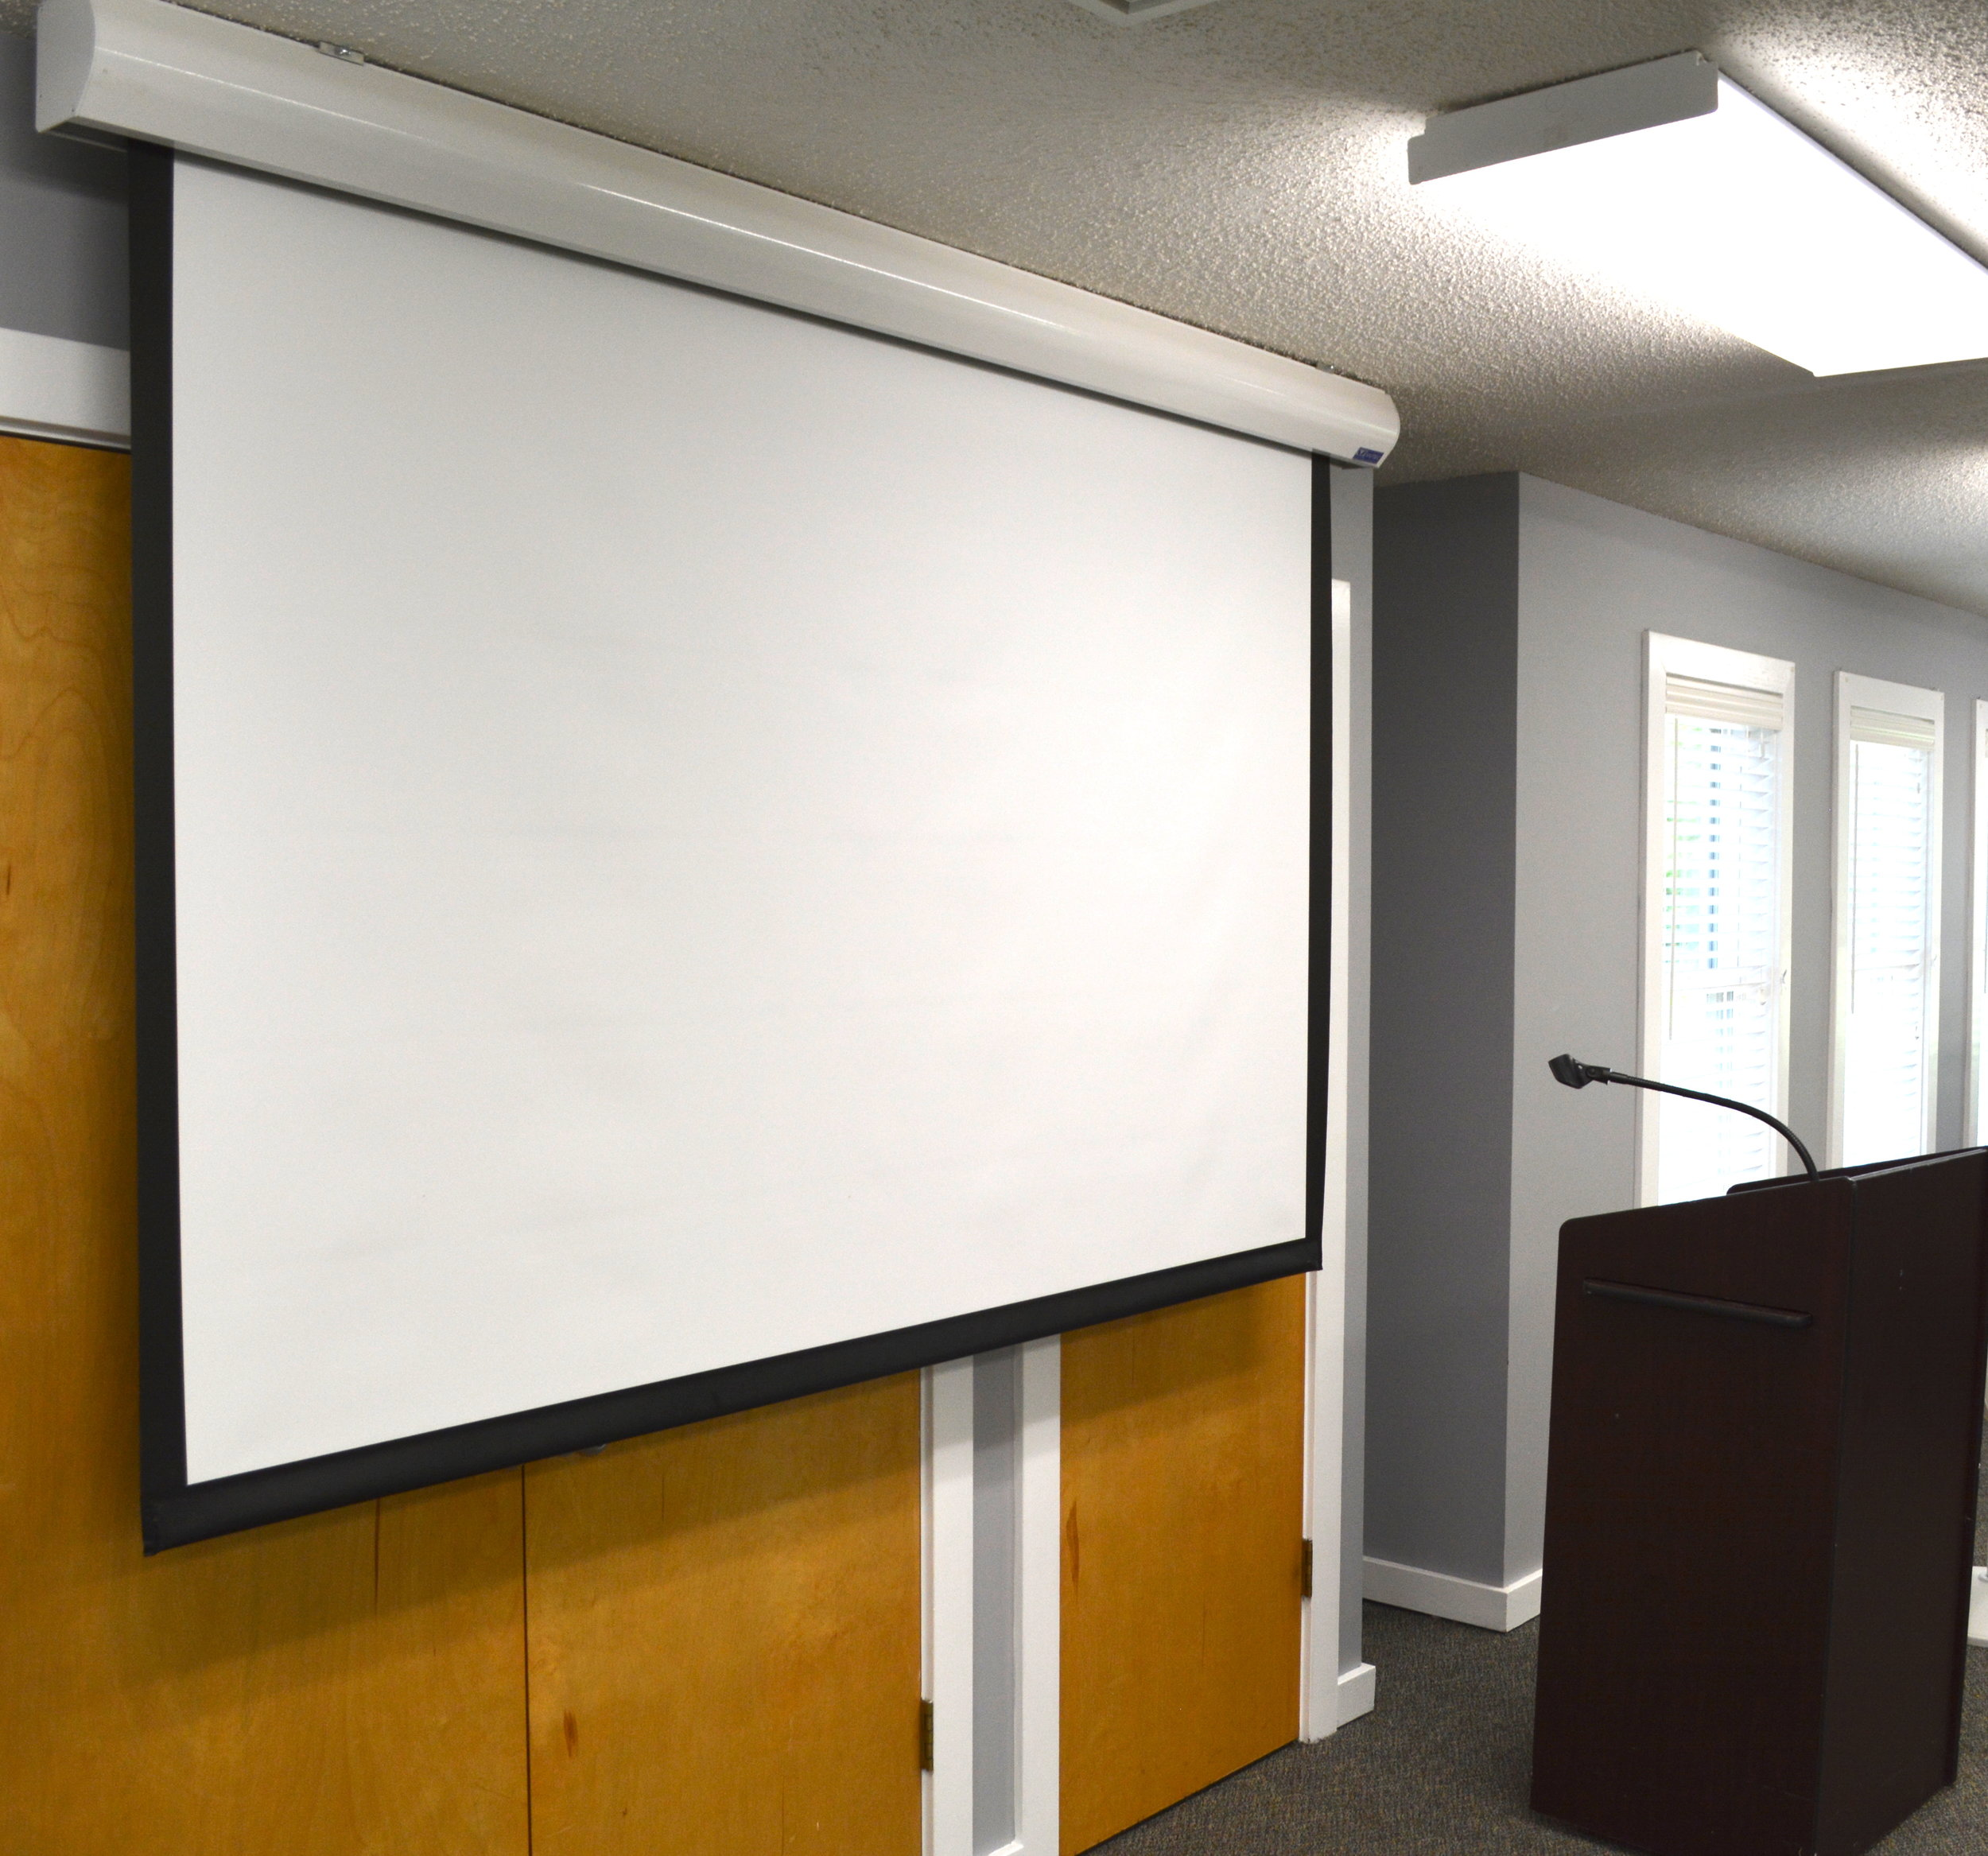 There is a large screen and a podium in the main room. The switch to lower and raise the screen is on the wall over the audio control box.